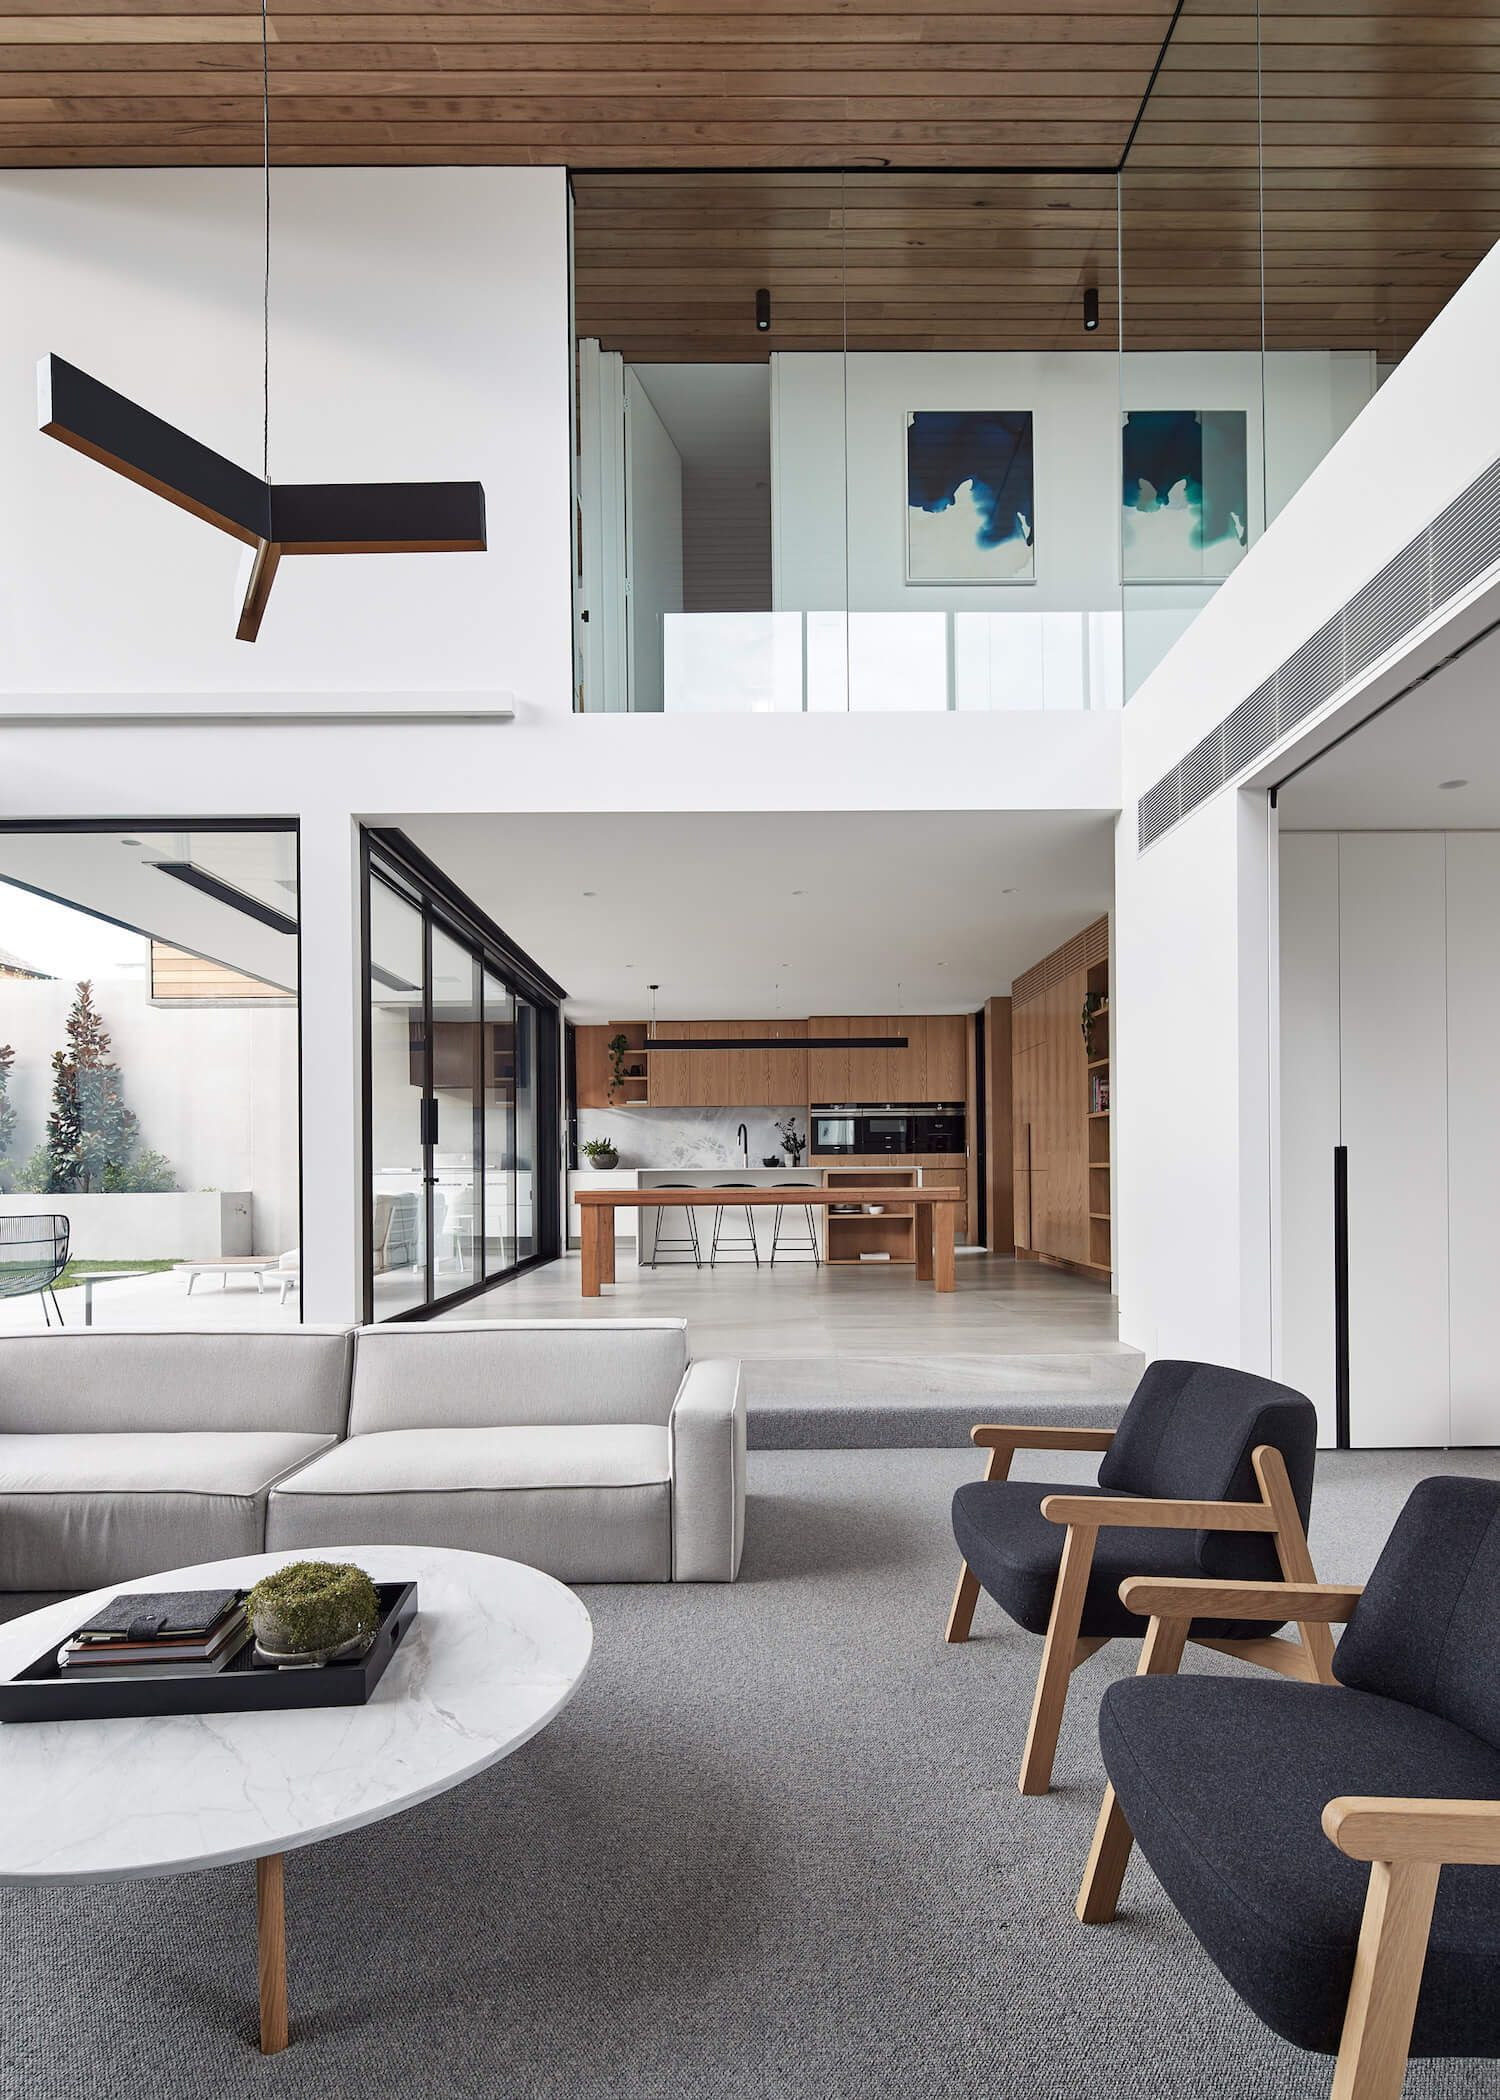 In inner north melbourne the home of ante kelic from id property group is  space to grow up into as well welcoming base for entertaining also these white chandeliers will turn your decor around unique rh pinterest